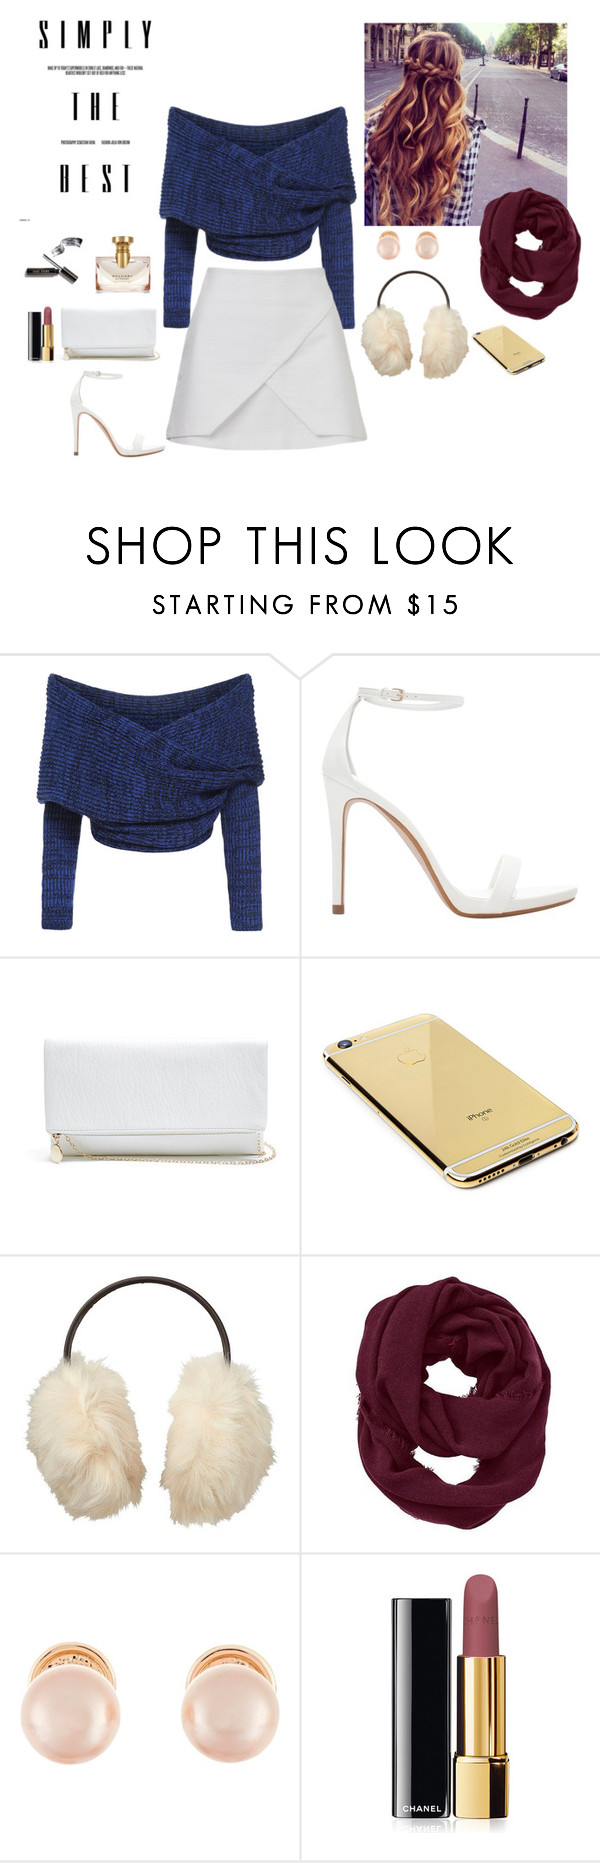 """""""Untitled #24"""" by lysndrsp on Polyvore featuring Zara, GUESS, Goldgenie, Uniqlo, Athleta, Kenneth Jay Lane, Chanel and Bulgari"""